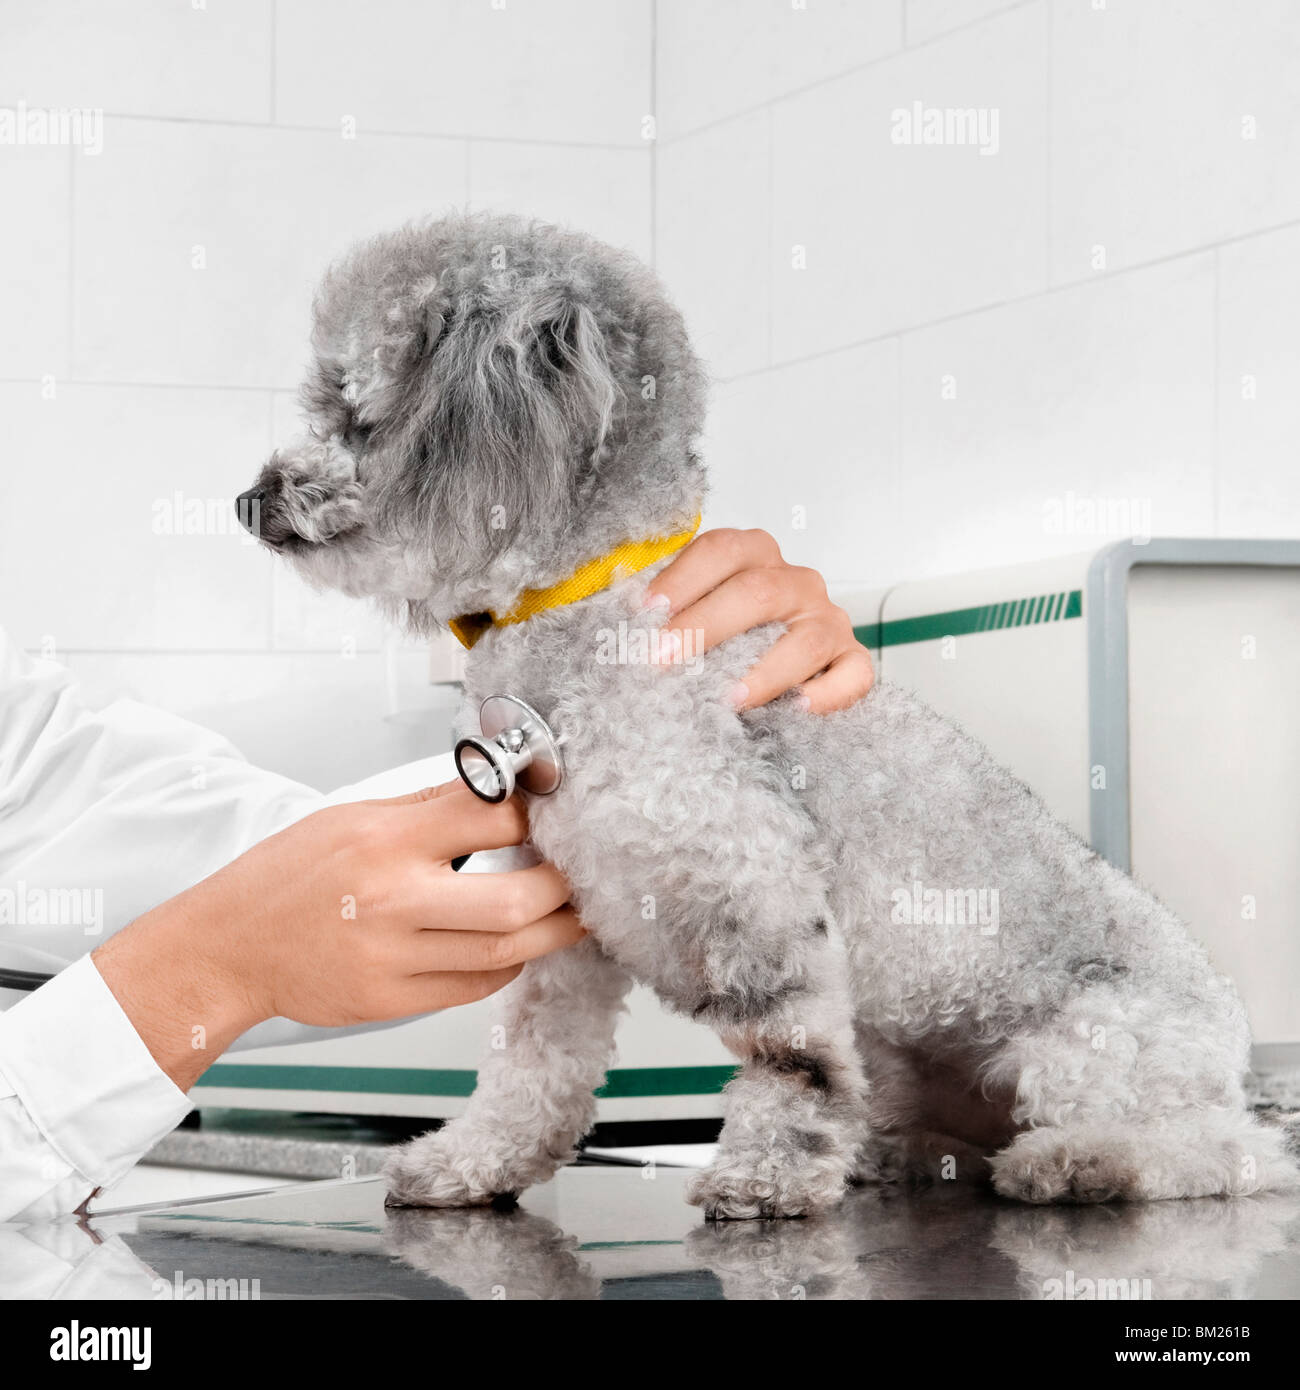 Vet examining a dog with a stethoscope - Stock Image